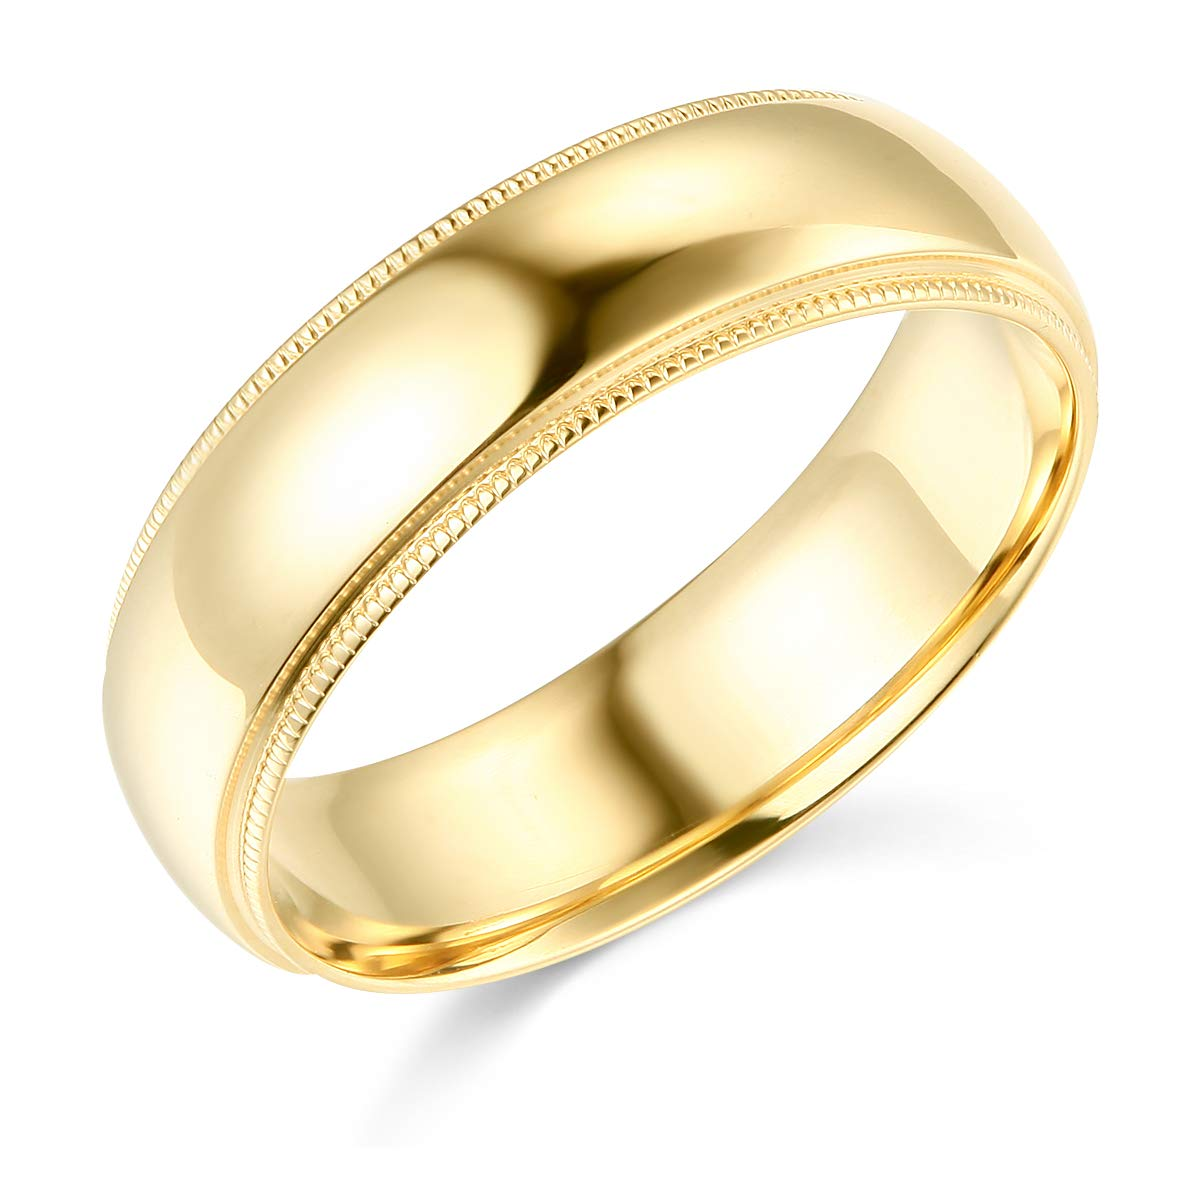 Wellingsale 14k Yellow Gold Solid 6mm HEAVY COMFORT FIT Milgrain Traditional Wedding Band Ring - Size 11